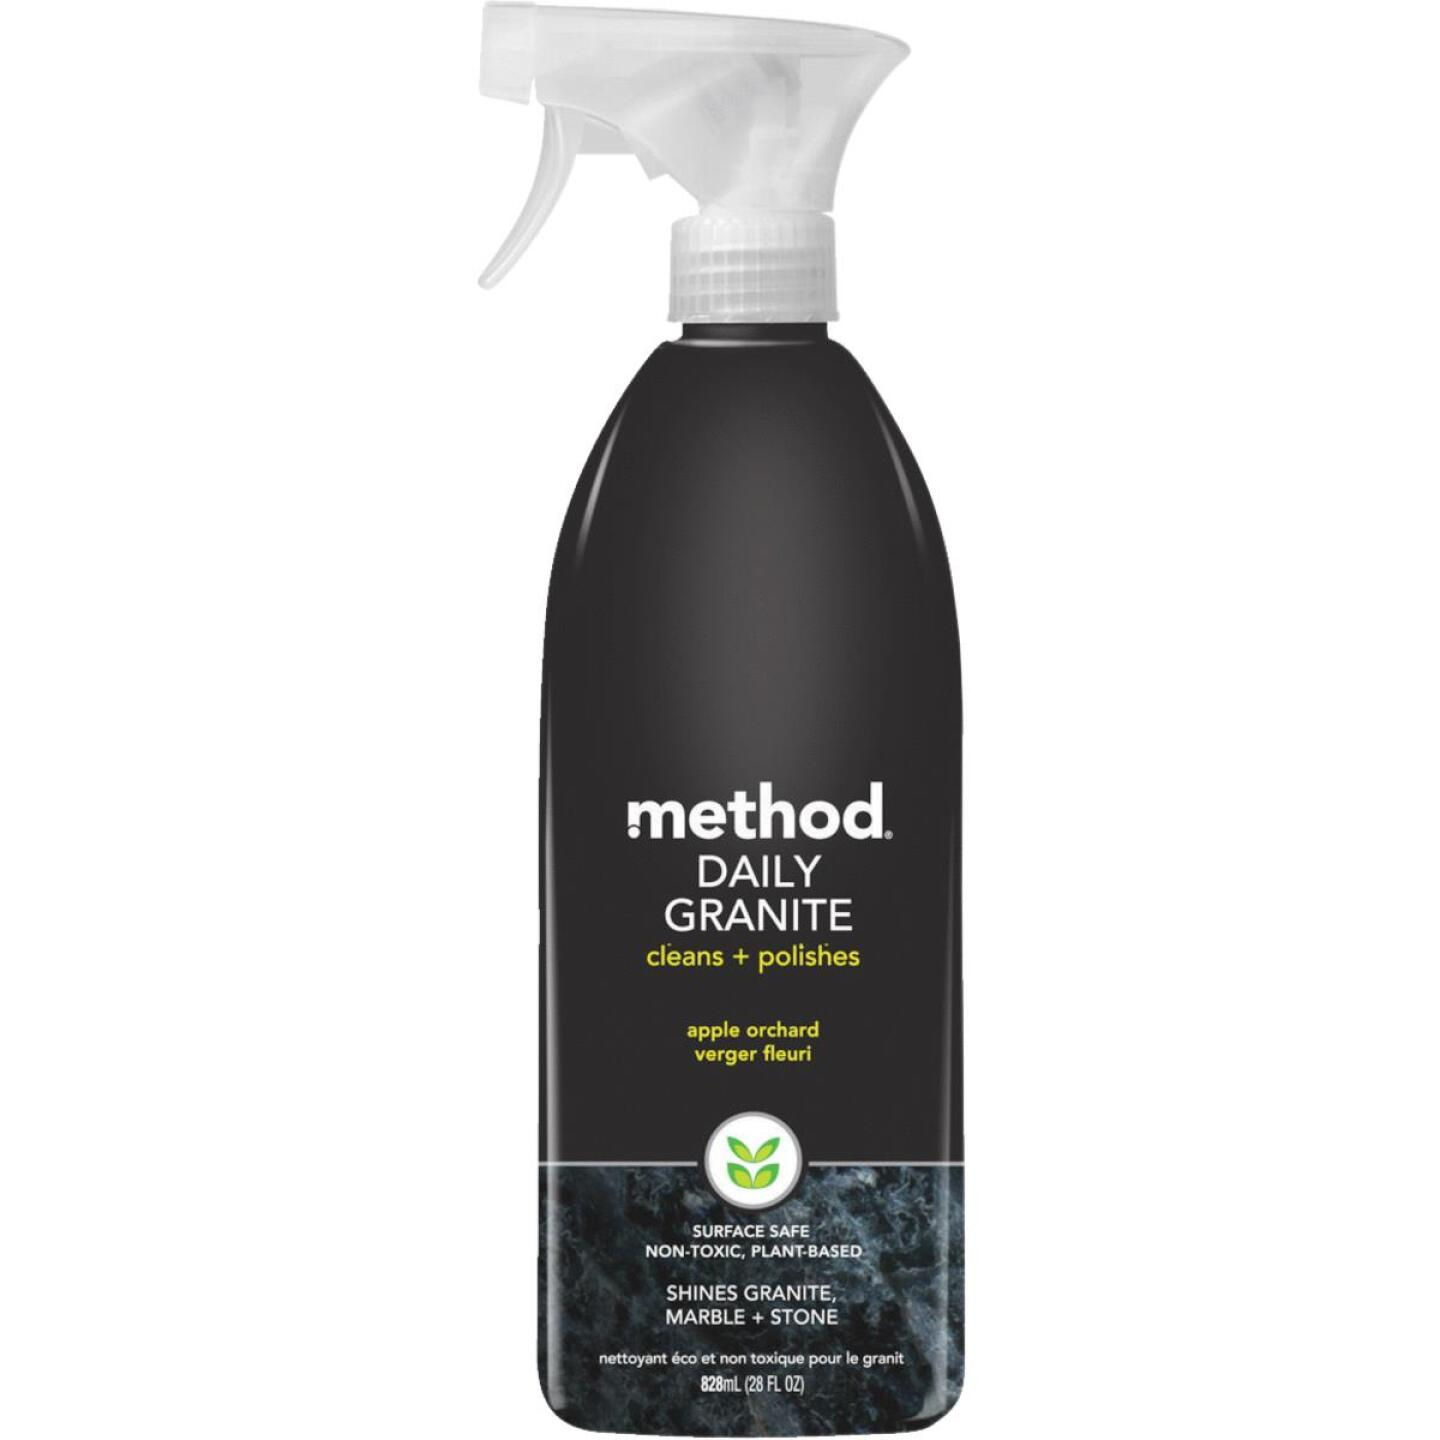 Method 28 Oz. Apple Orchard Daily Granite Cleaner Spray Image 1